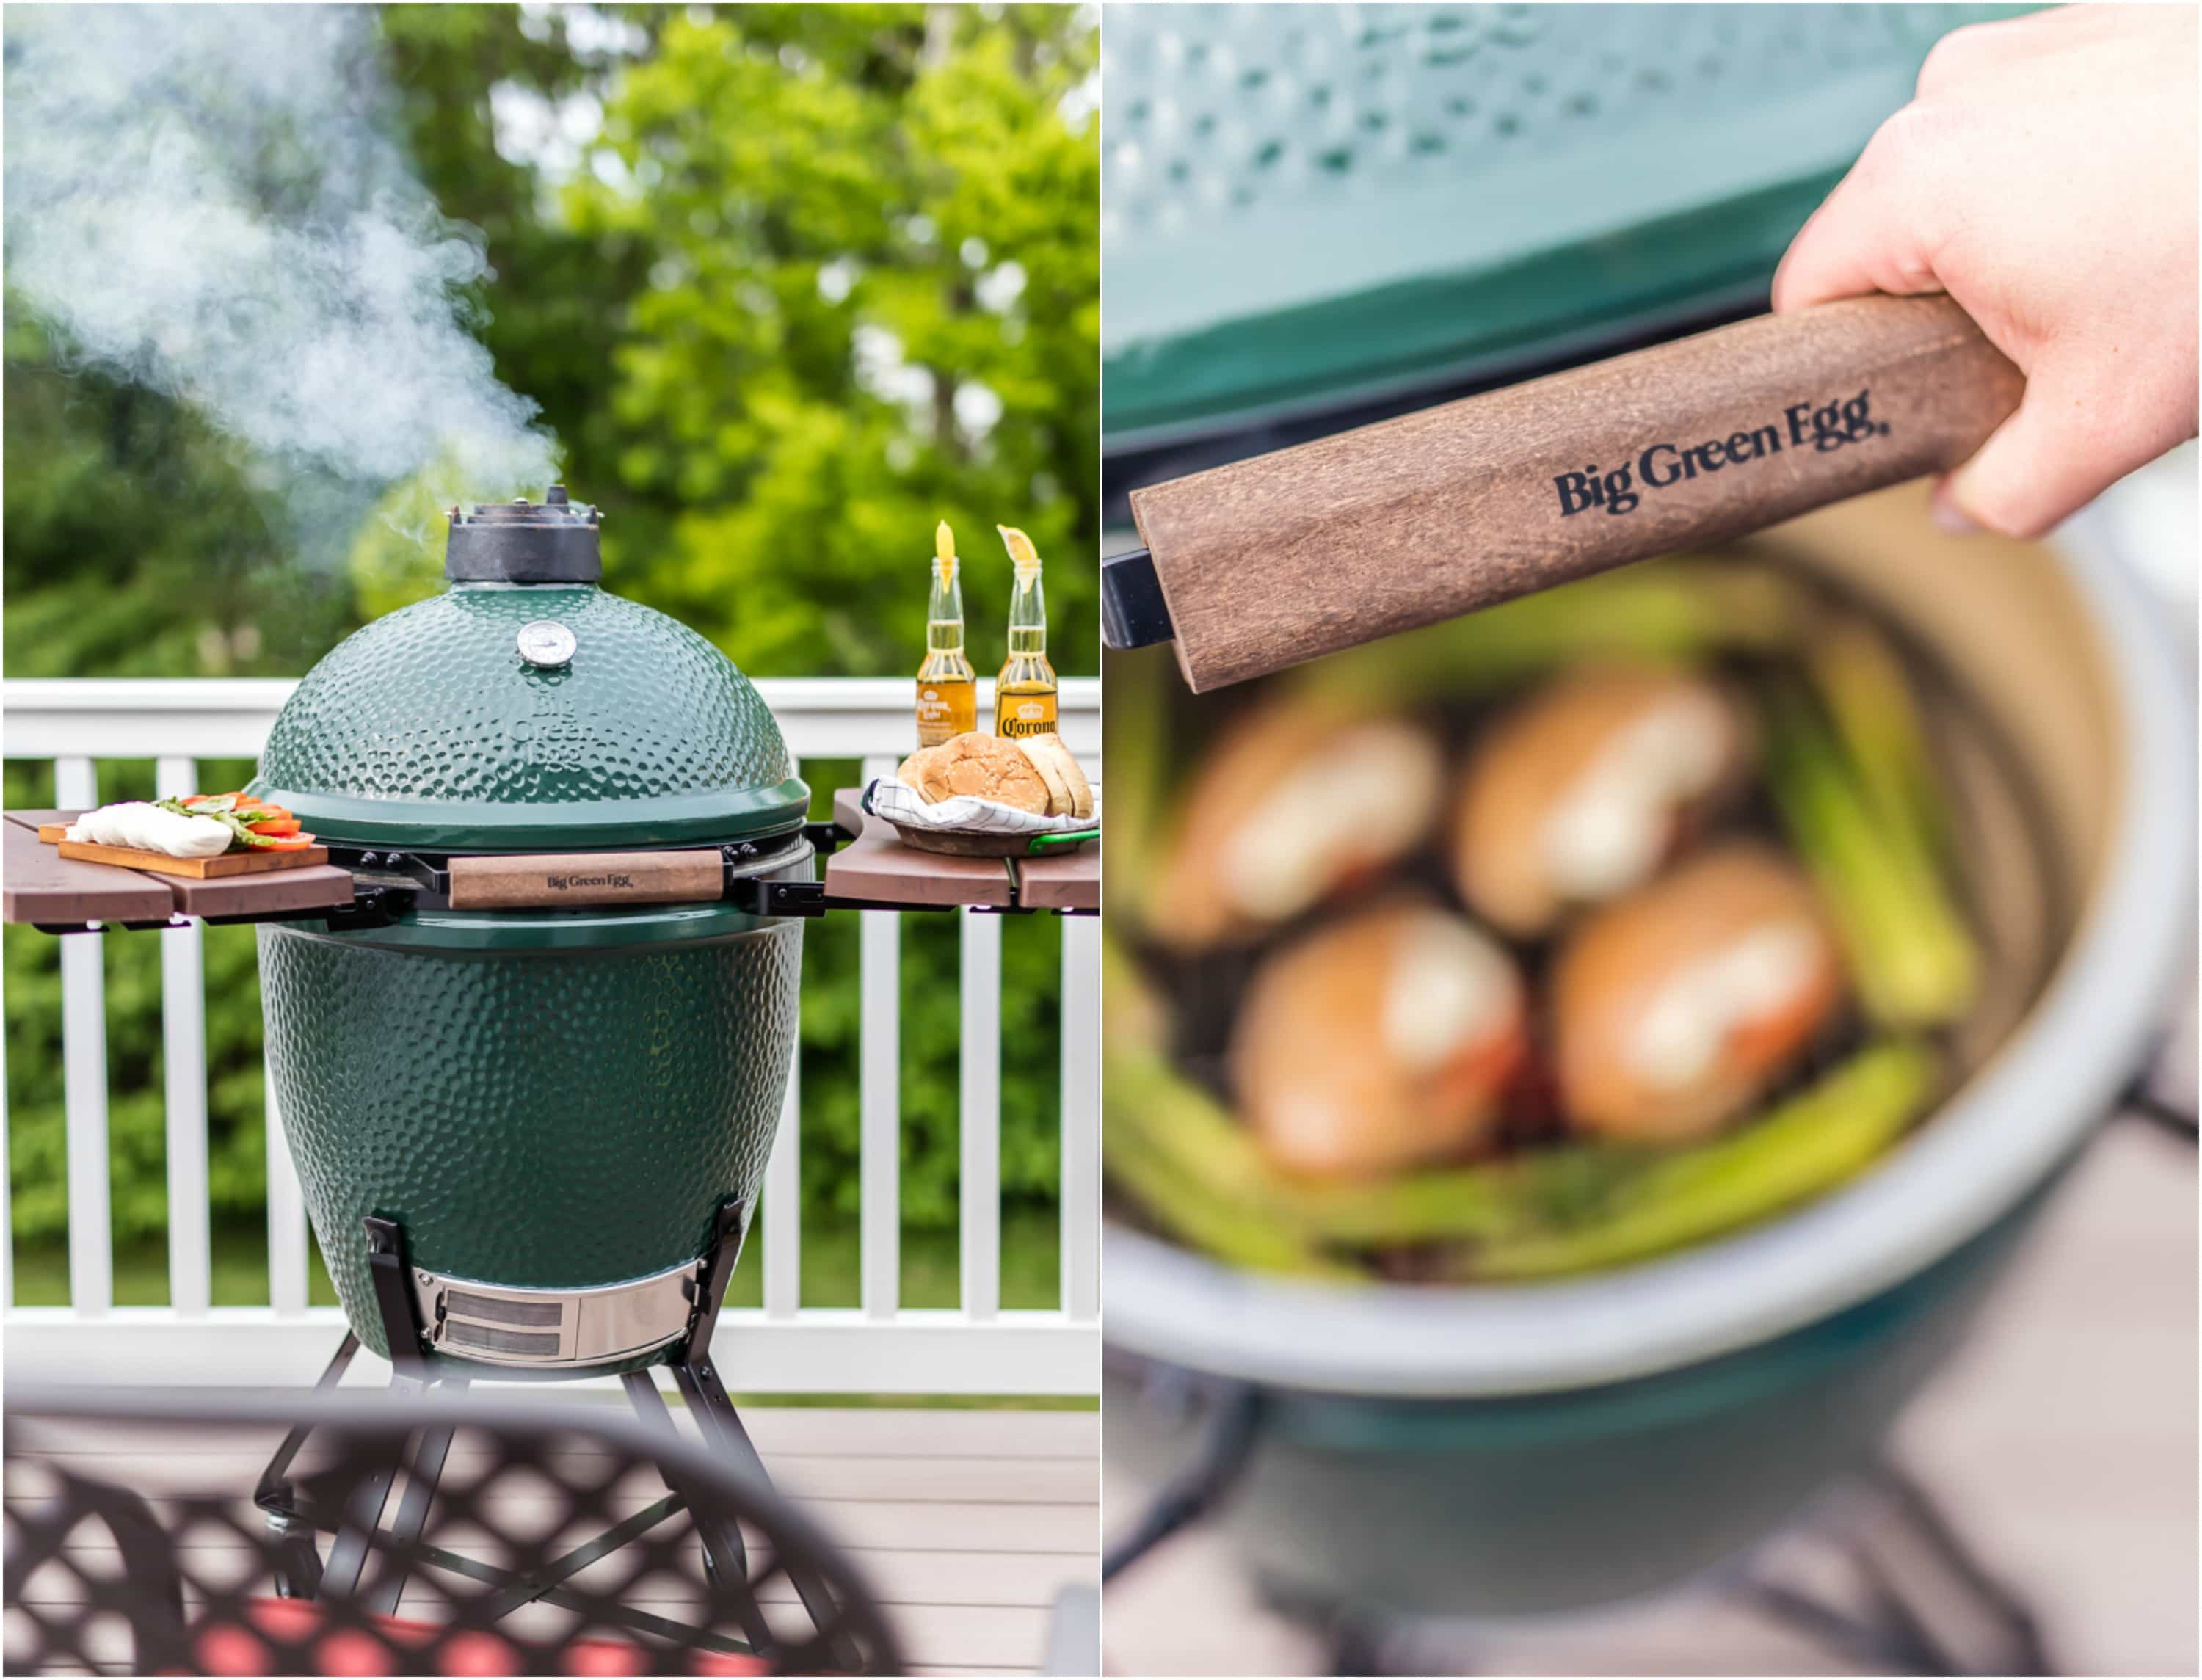 green egg grill on patio